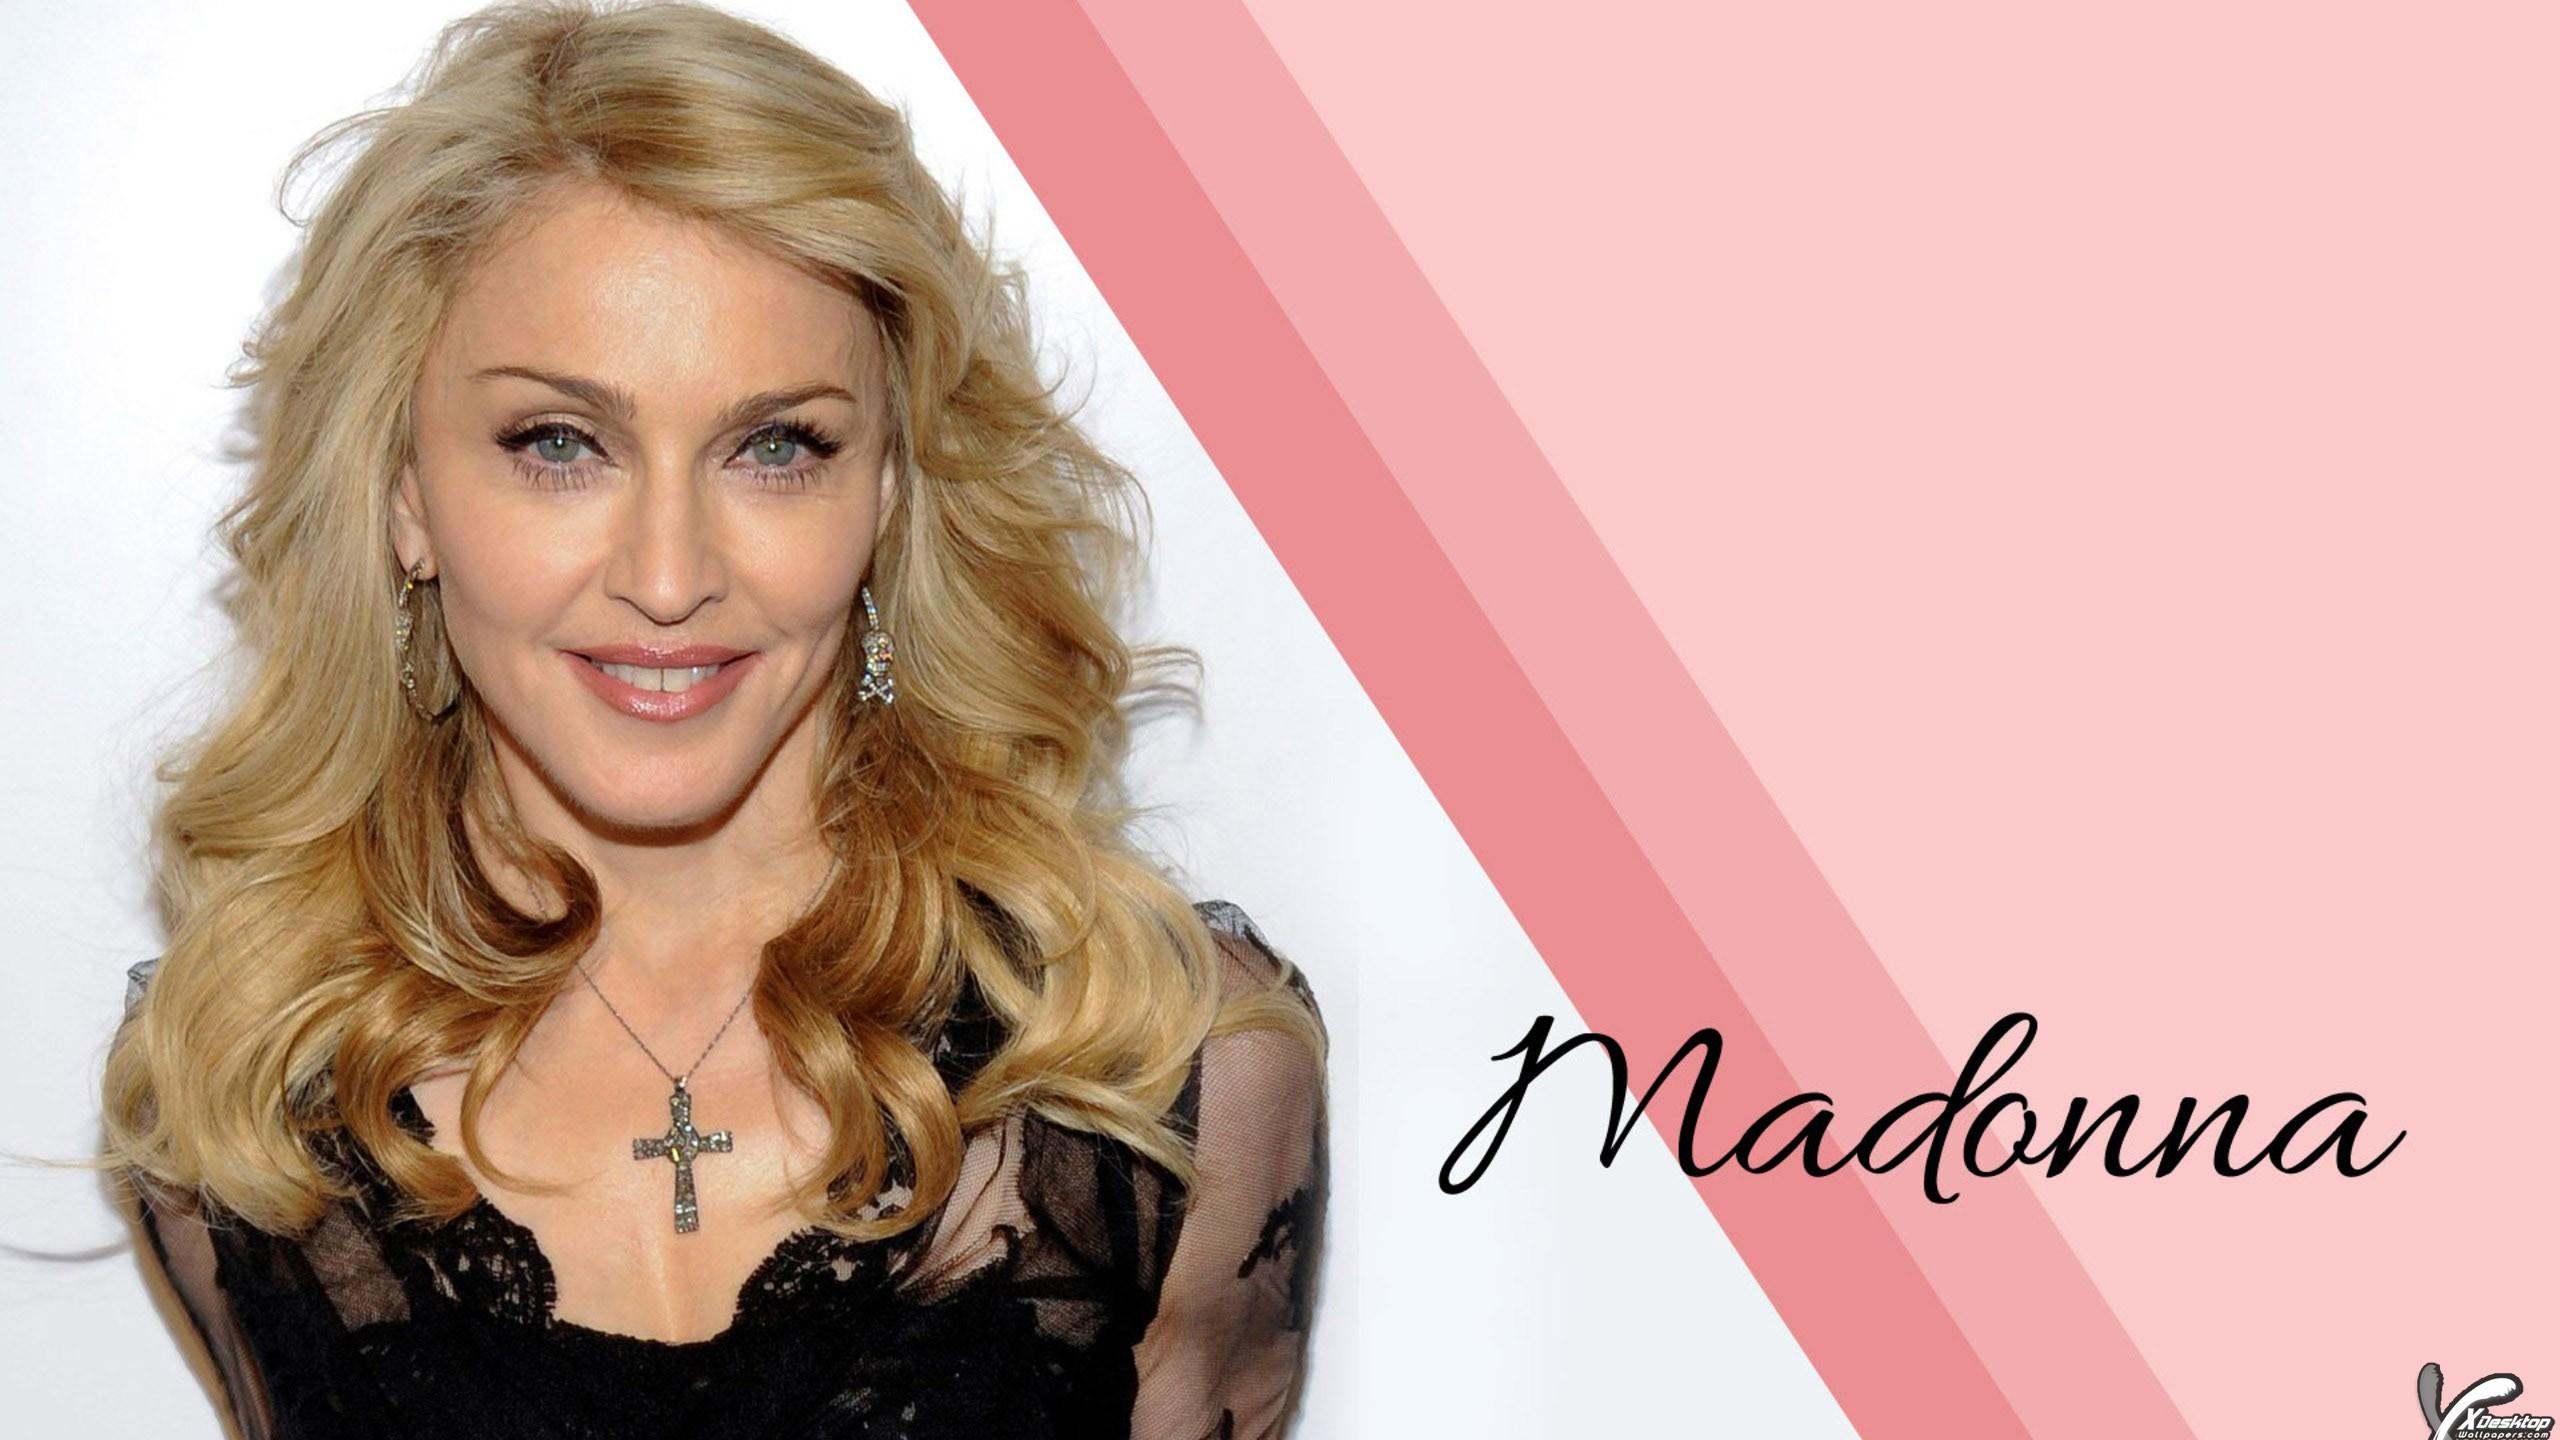 Madonna Wallpapers, Photos & Image in HD